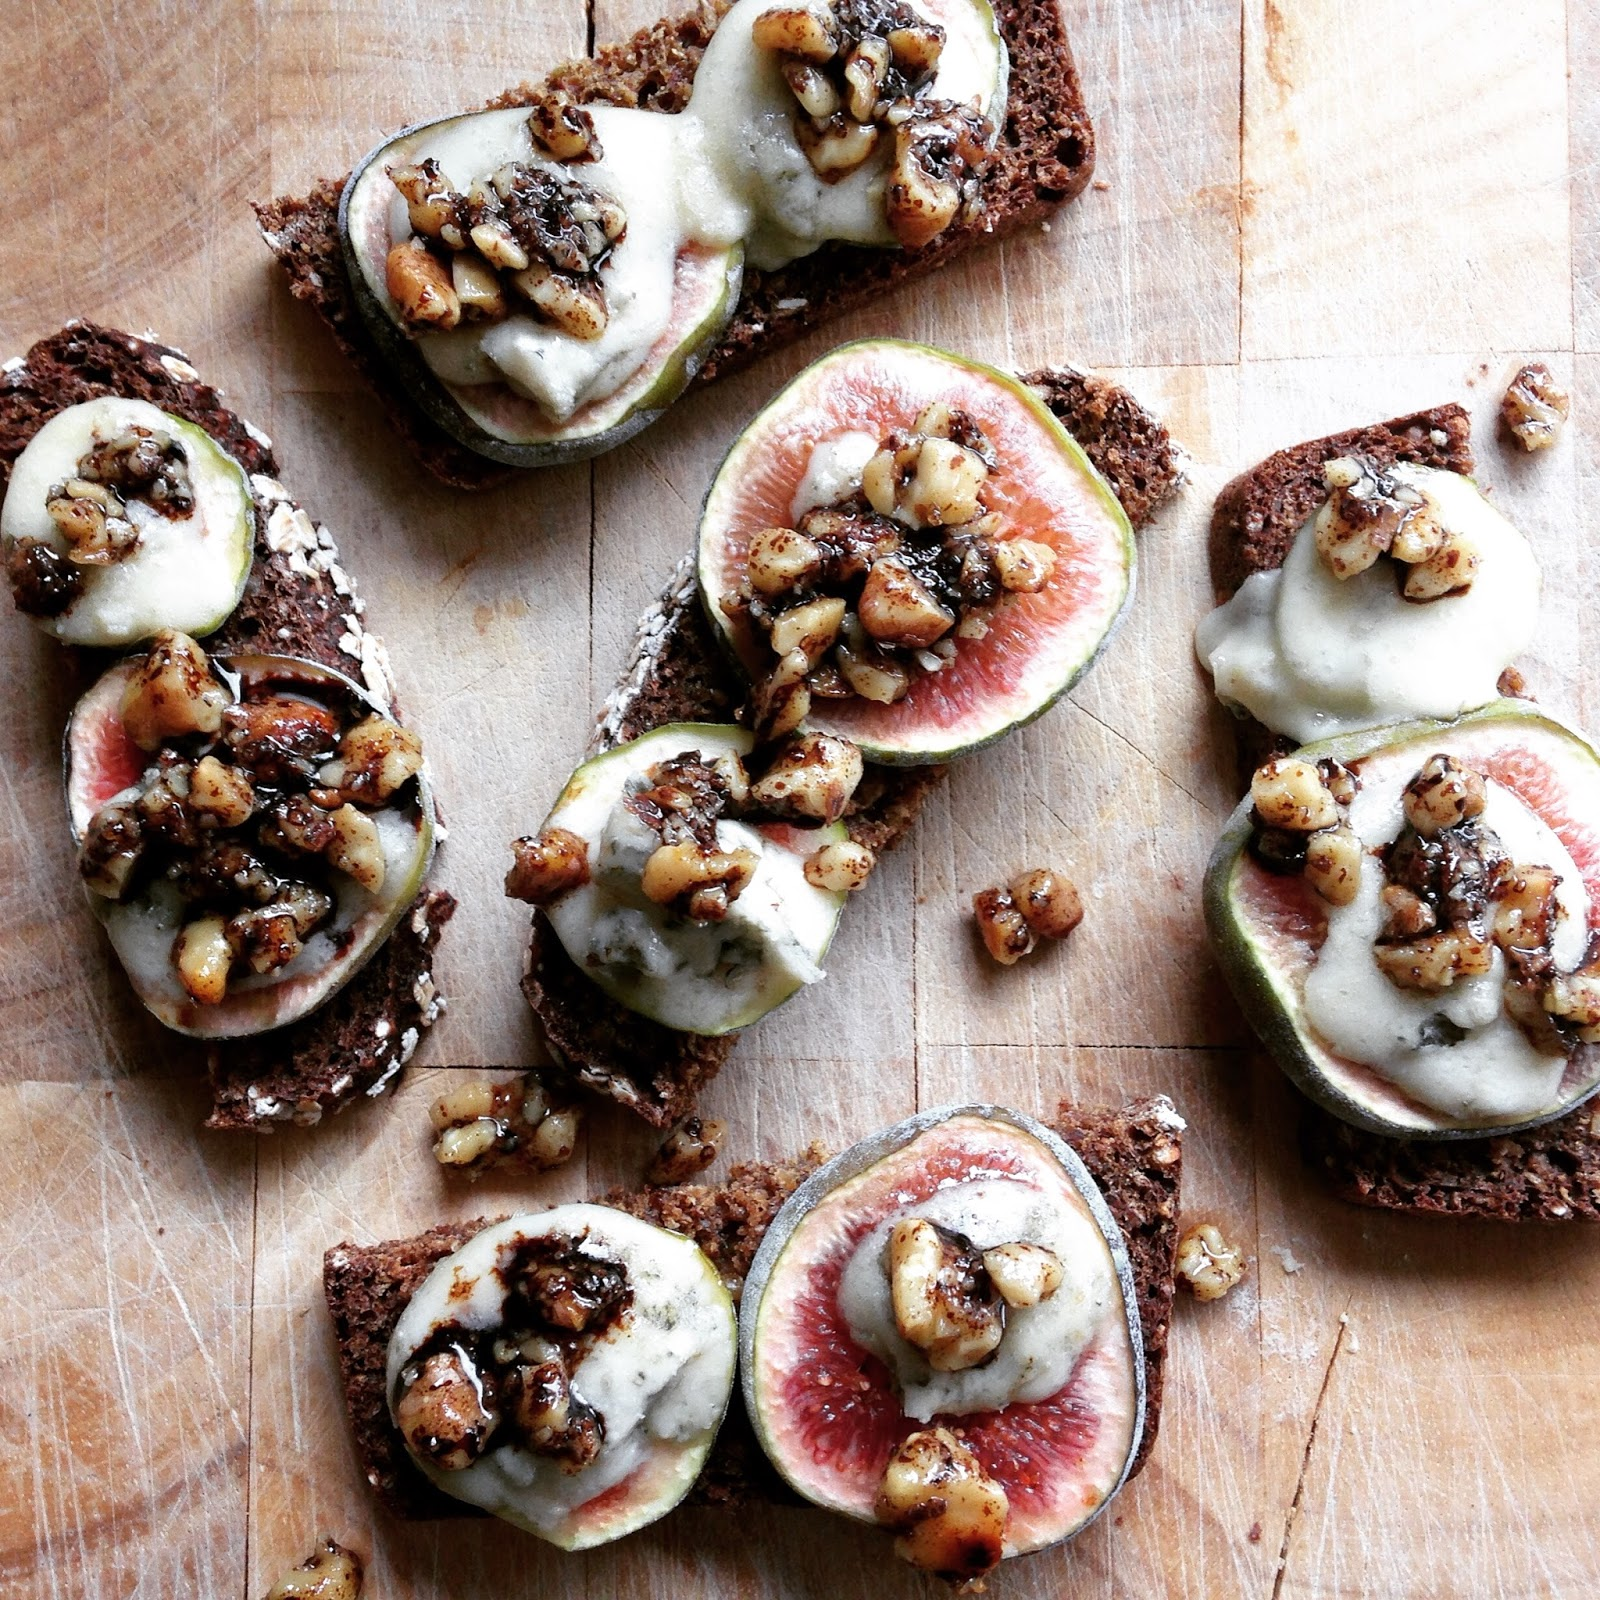 Baked Figs, Crozier Blue and Crushed Candied Walnuts